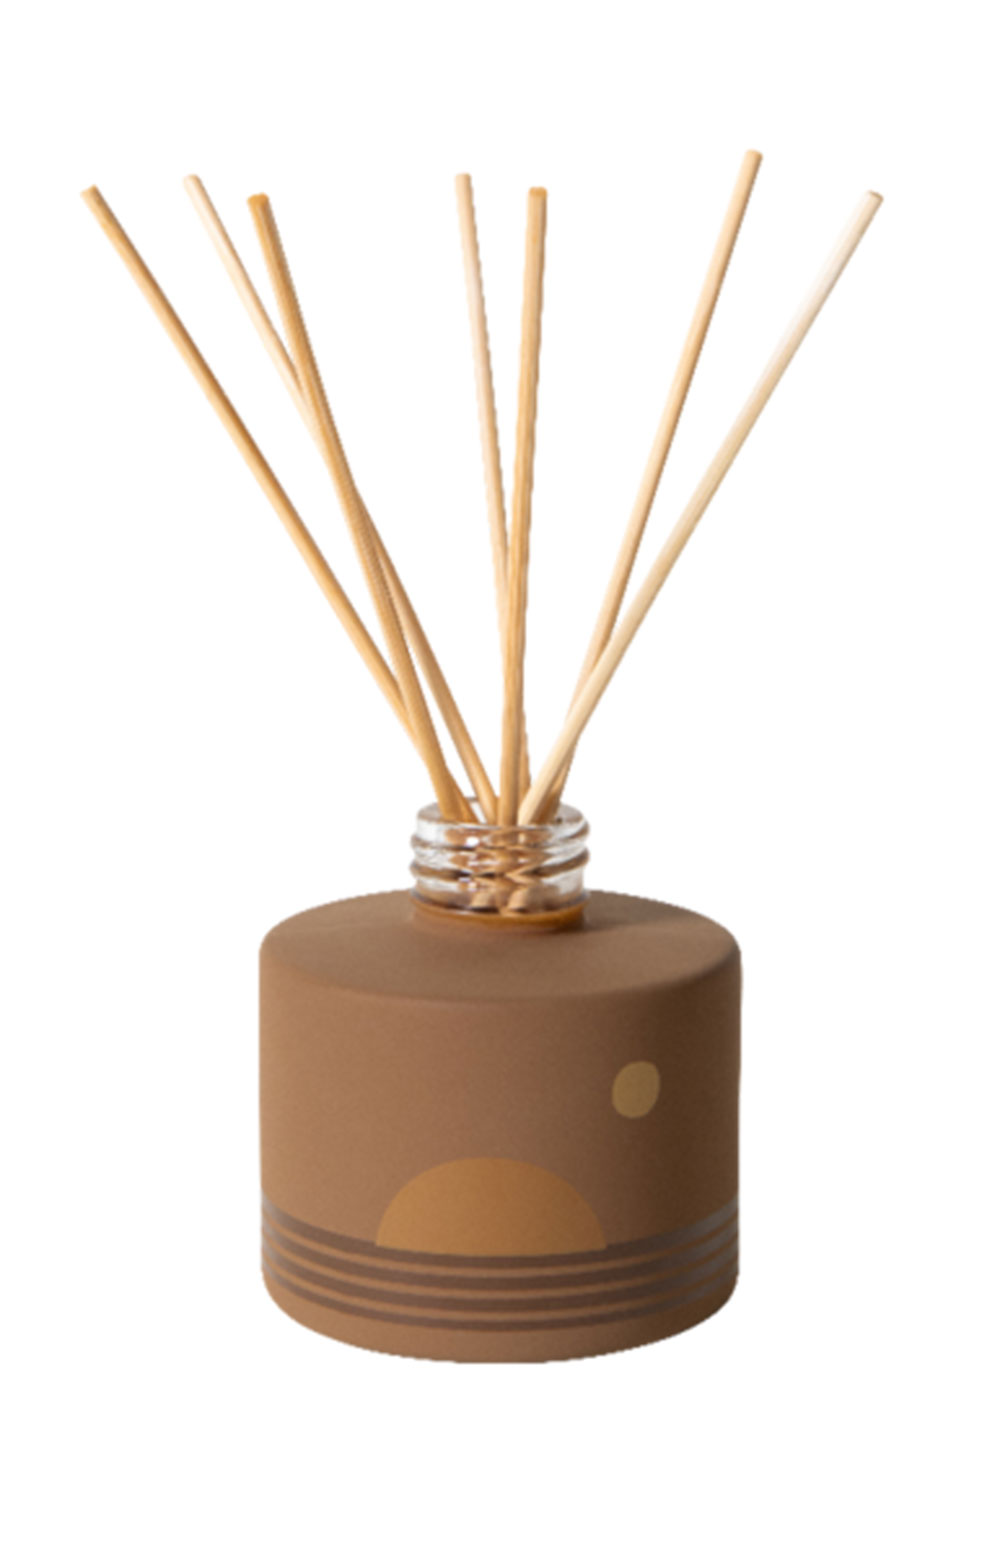 Dusk Reed Reed Diffuser 2